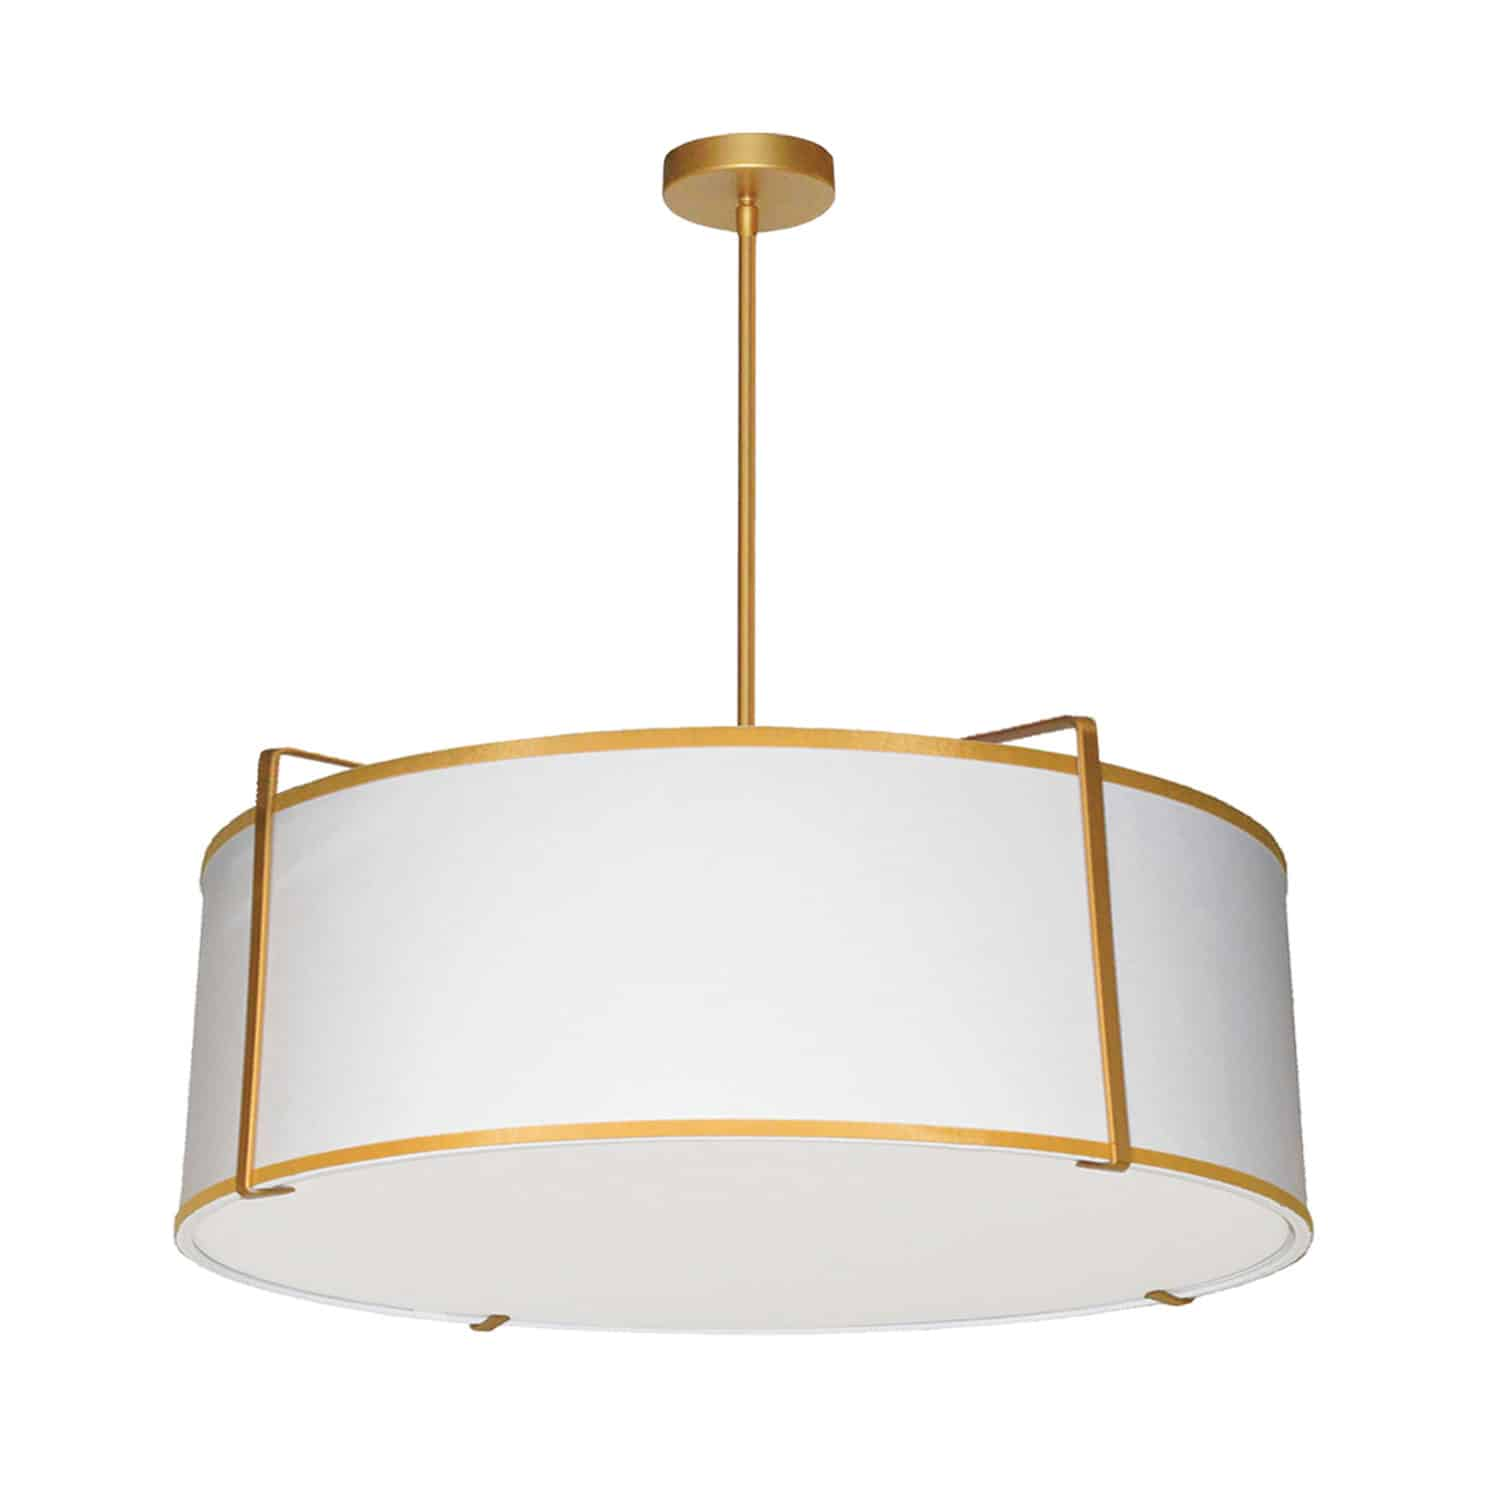 4 Light Drum Pendant, Gold/White Shade, 790 Diffuser,Gold